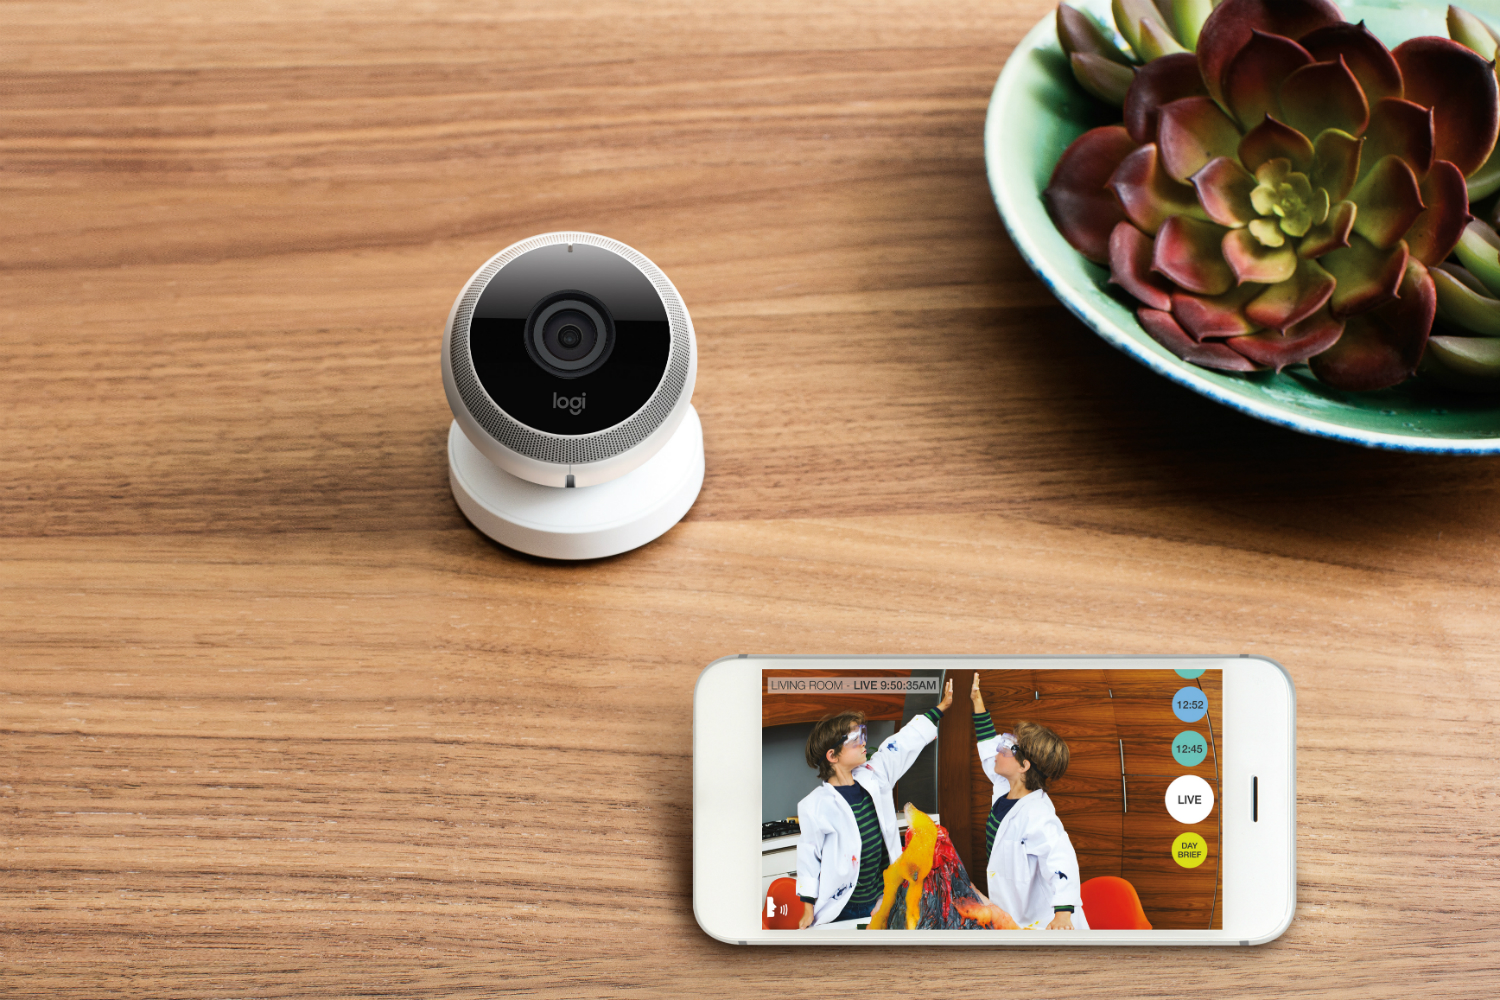 The Logitech Circle Camera Is More For Capturing Moments